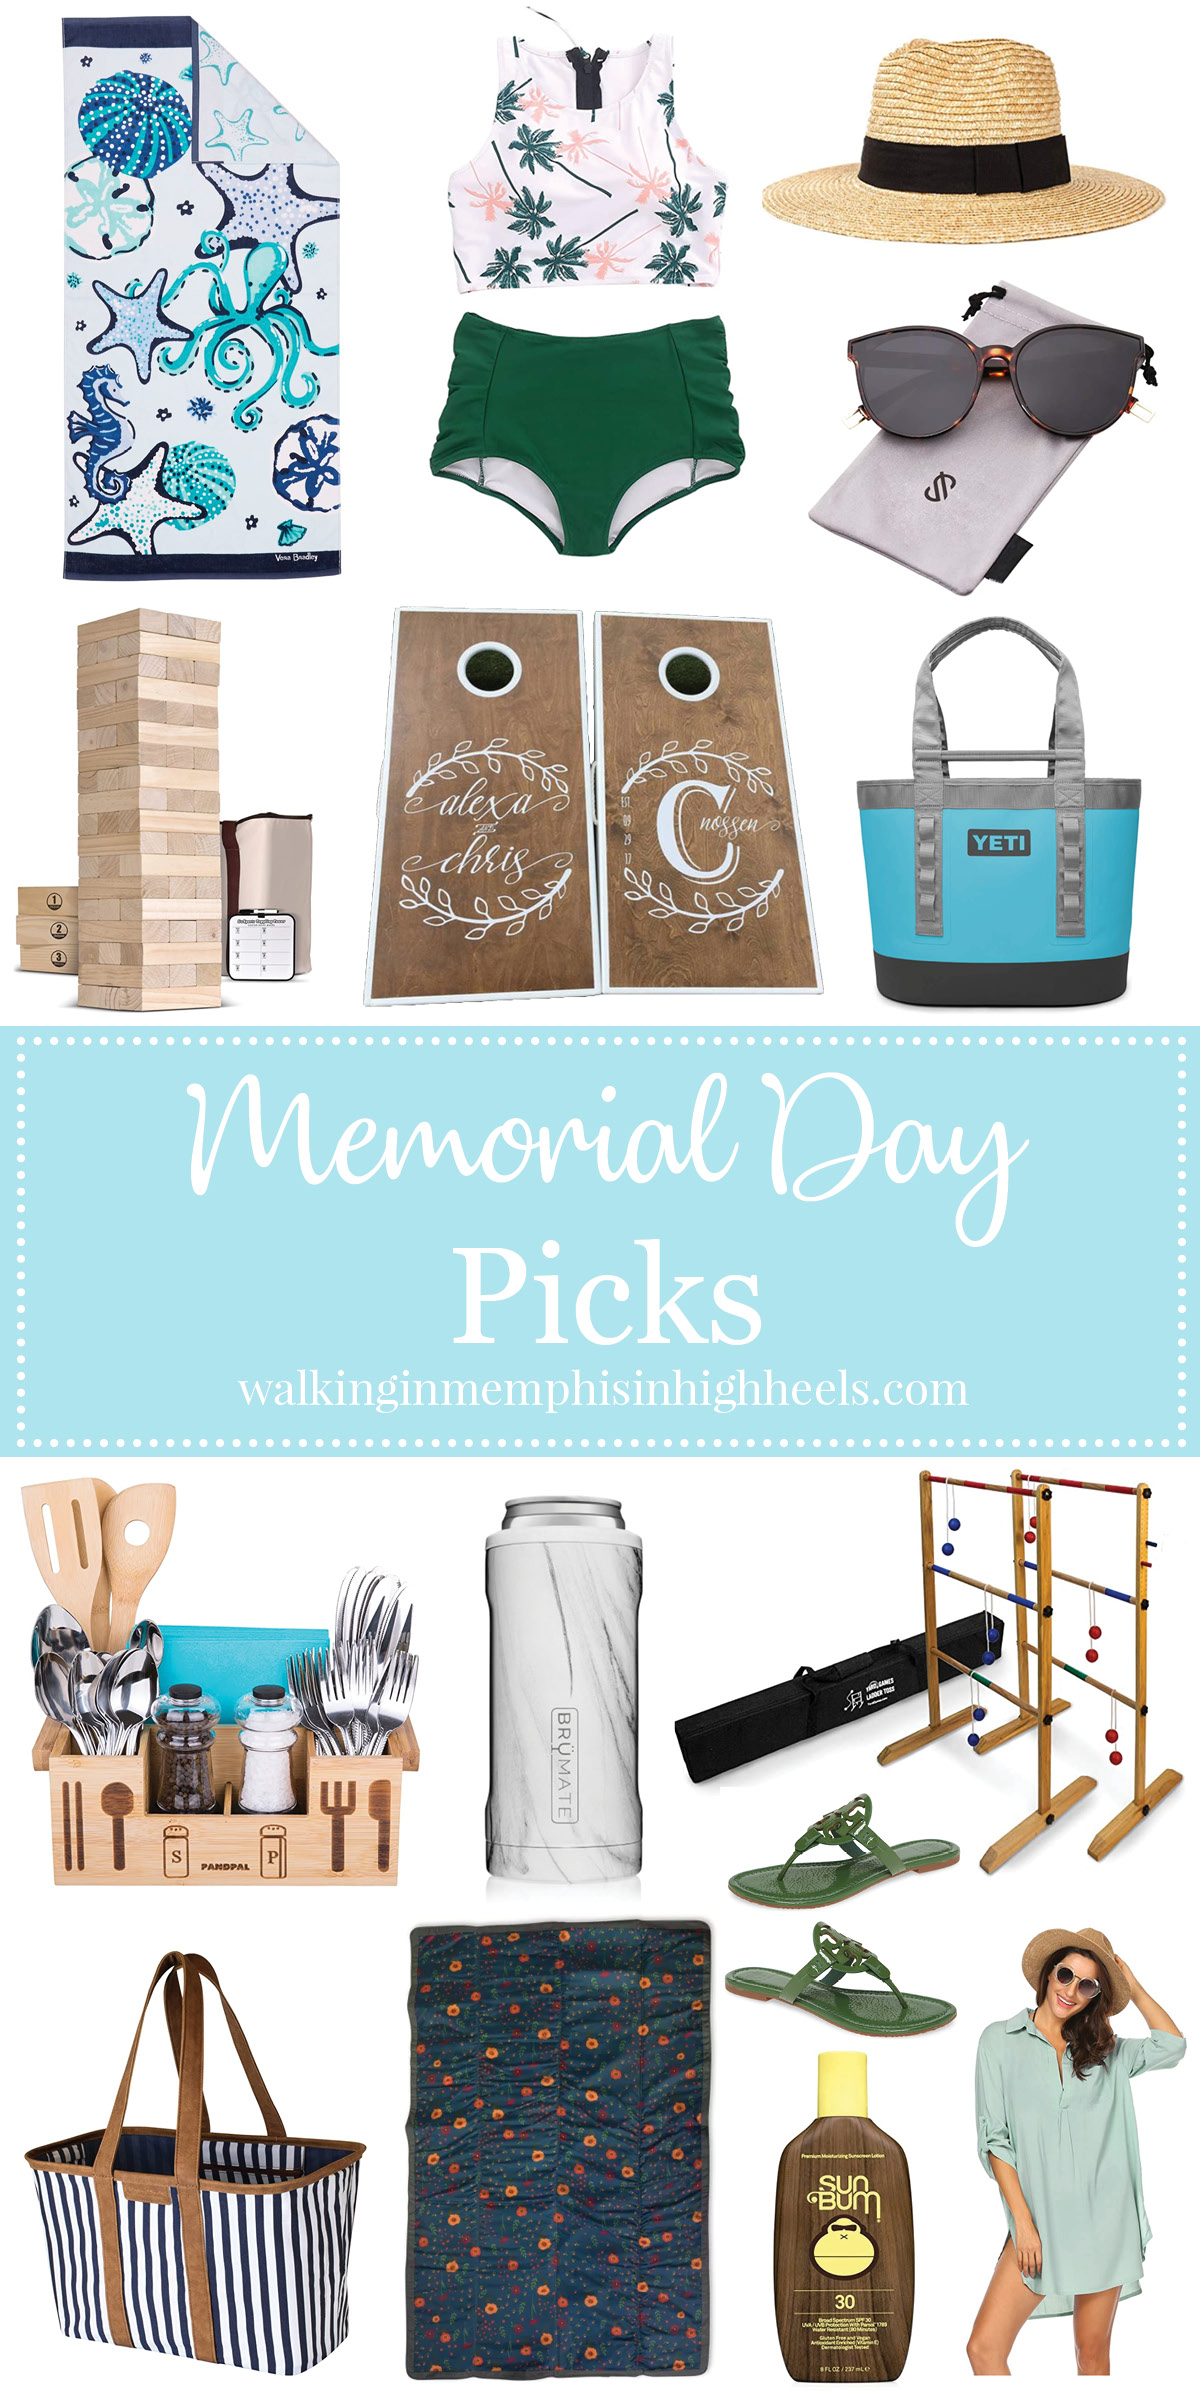 Memorial Day Weekend Style: 15 Essentials to Spend the Weekend Outdoors featured by top Memphis life and style blog, Walking in Memphis in High Heels.